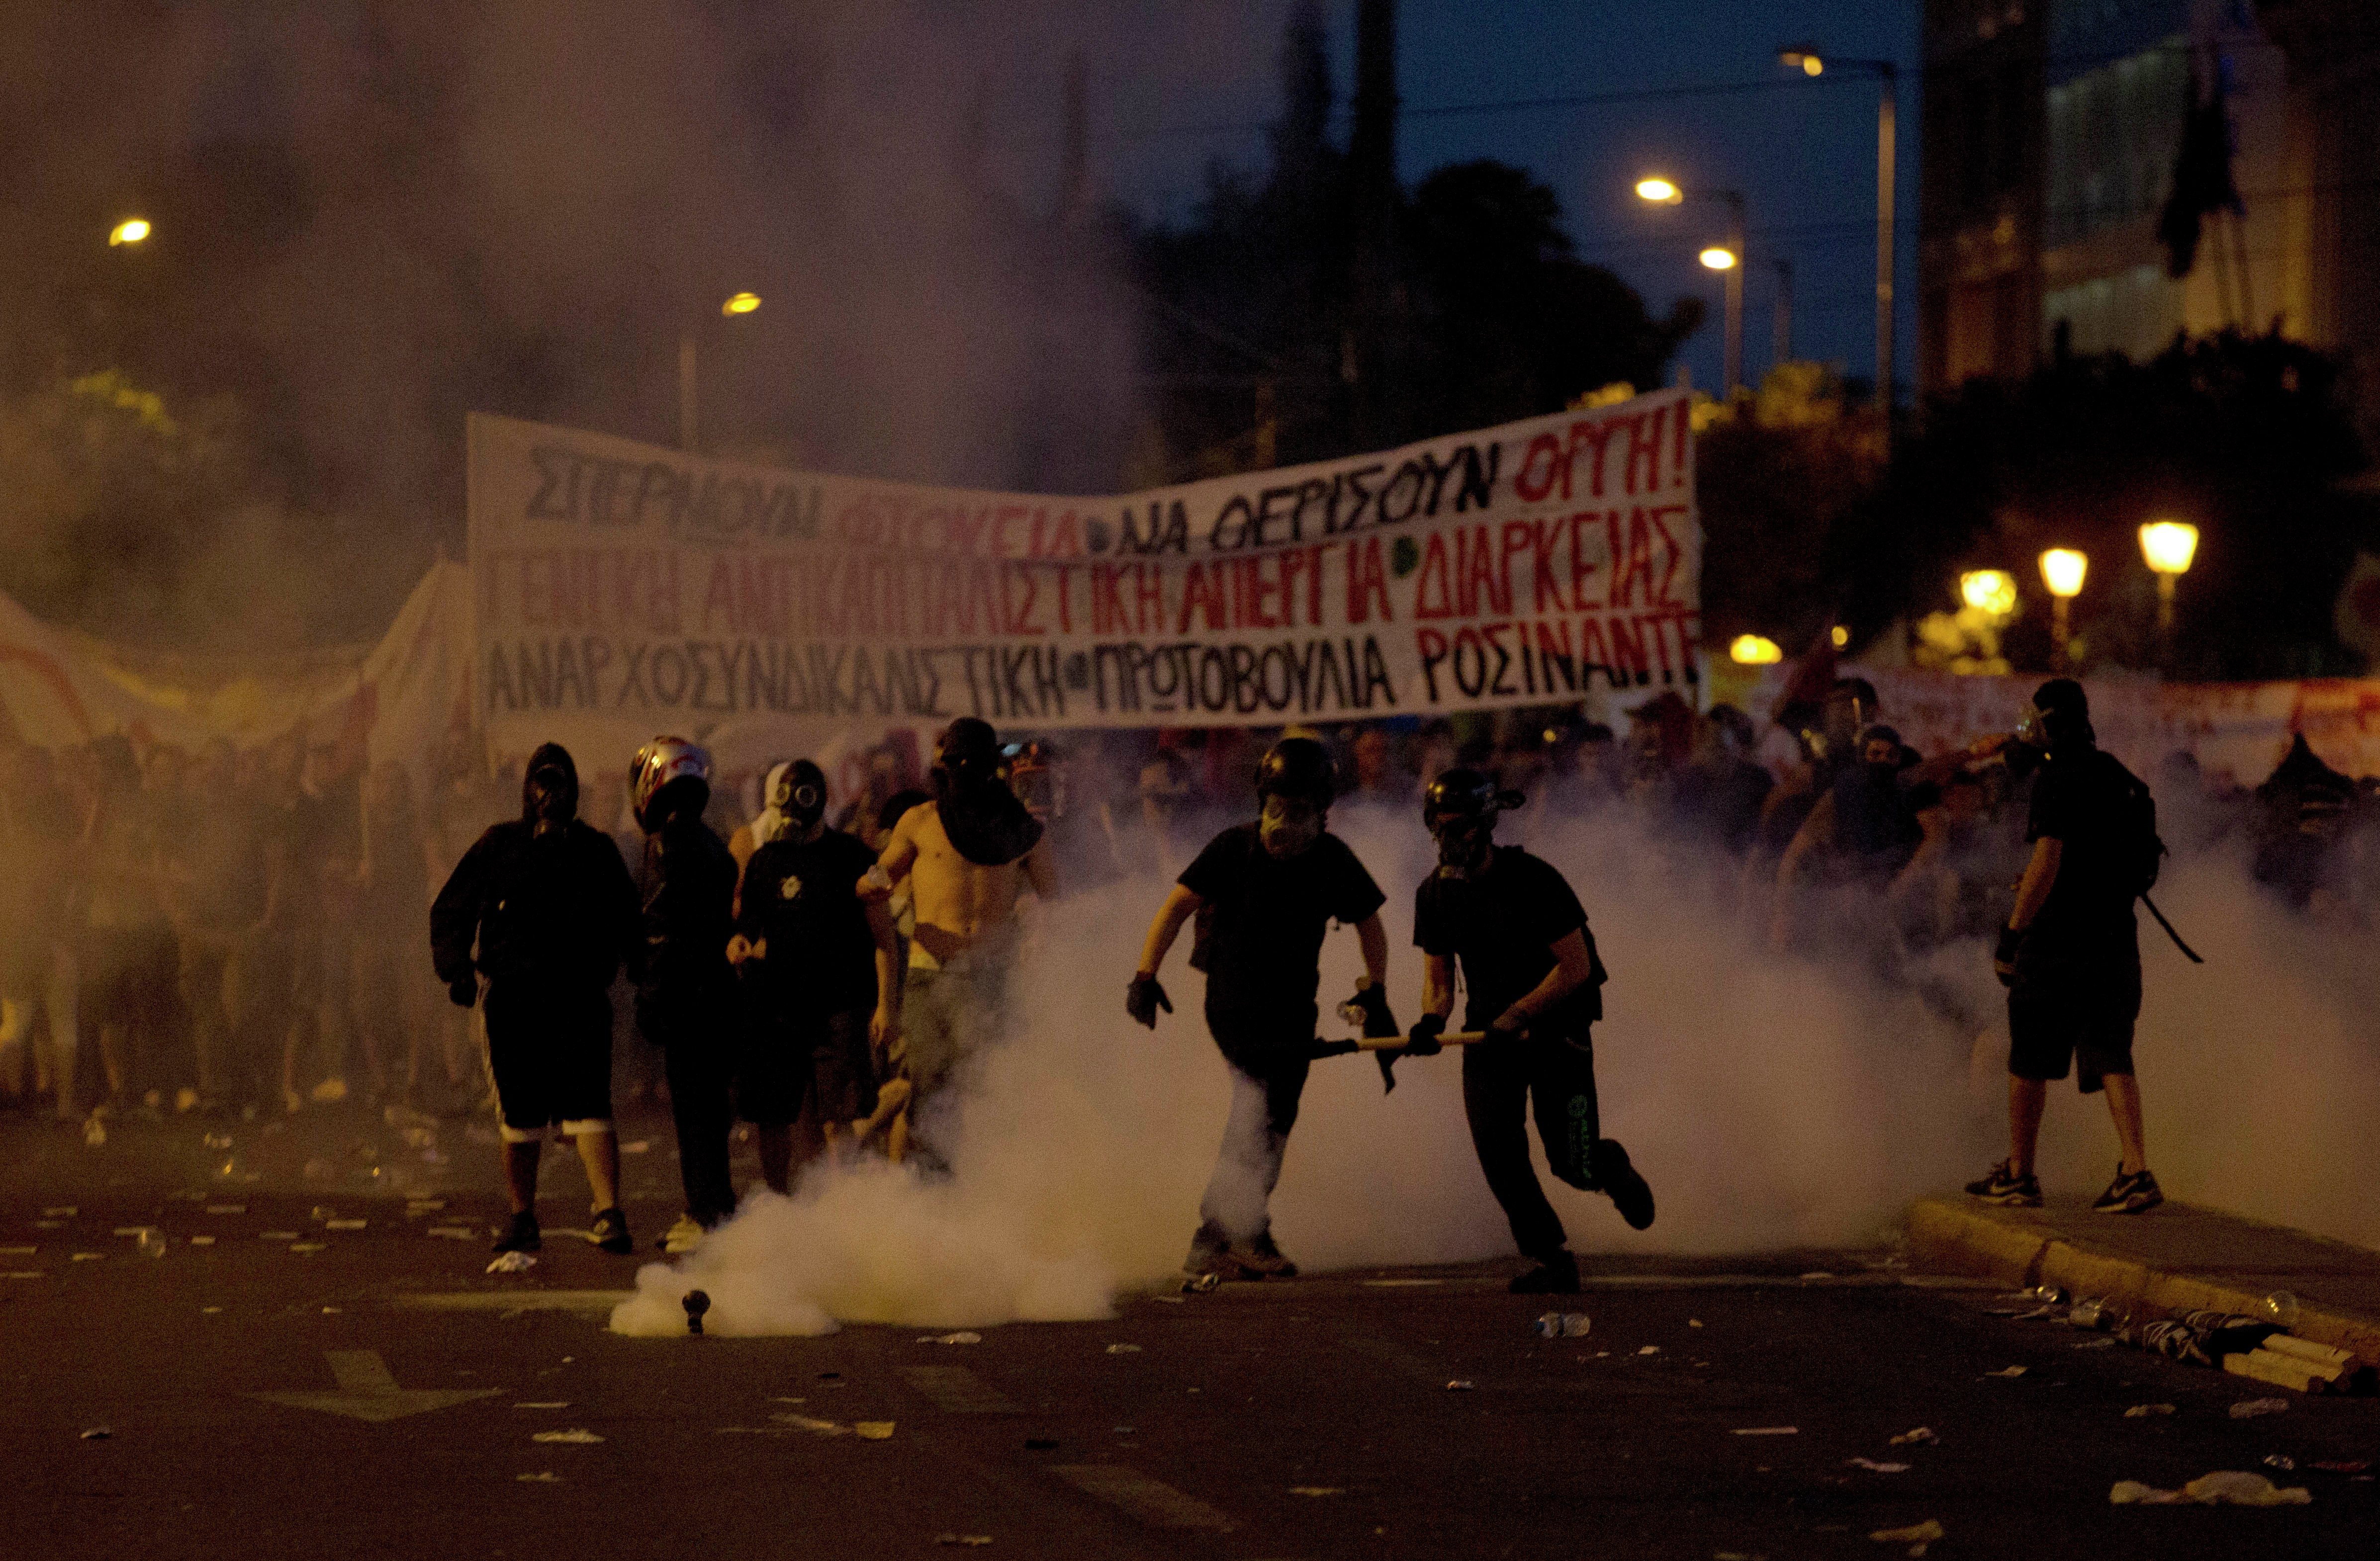 Anti-austerity protesters clash with riot police during a rally in Athens, Wednesday, July 15, 2015